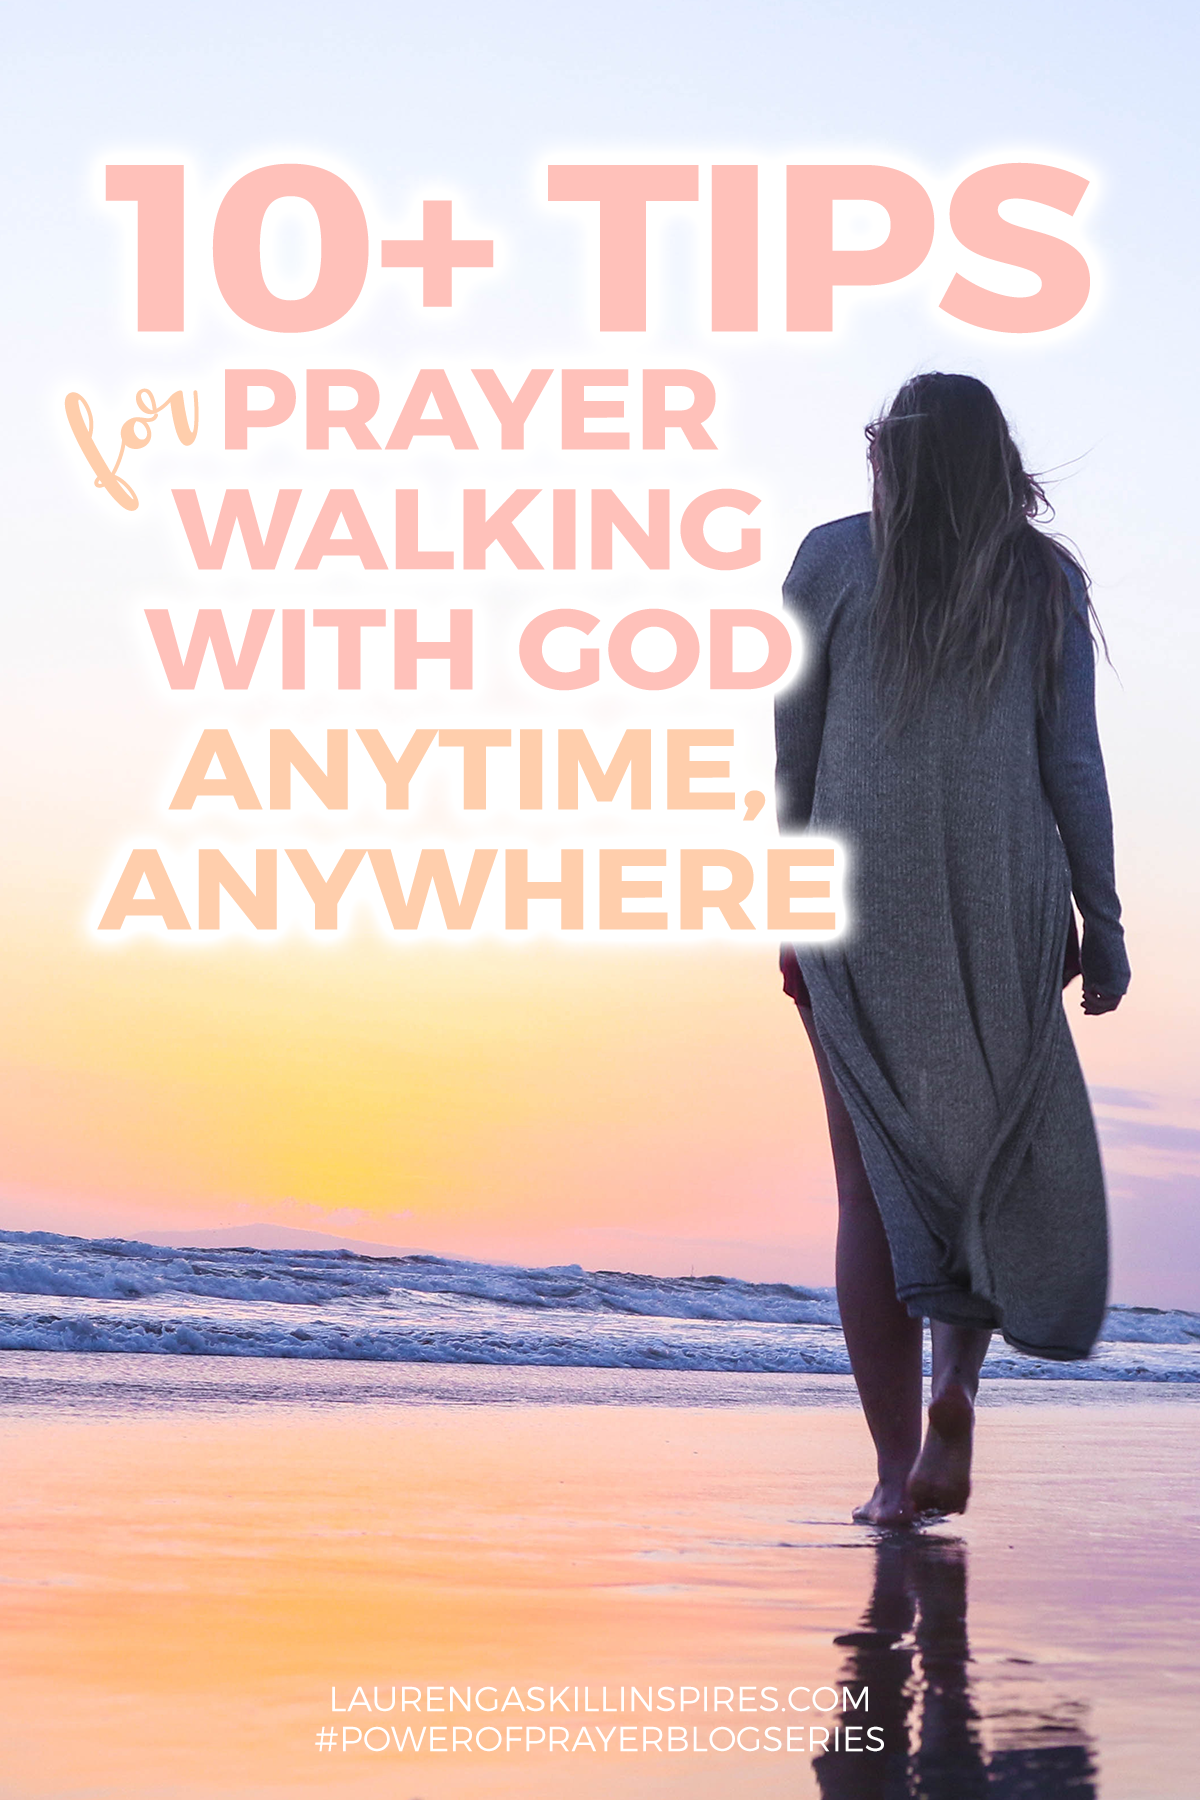 10+ Tips for Praying Walking with God